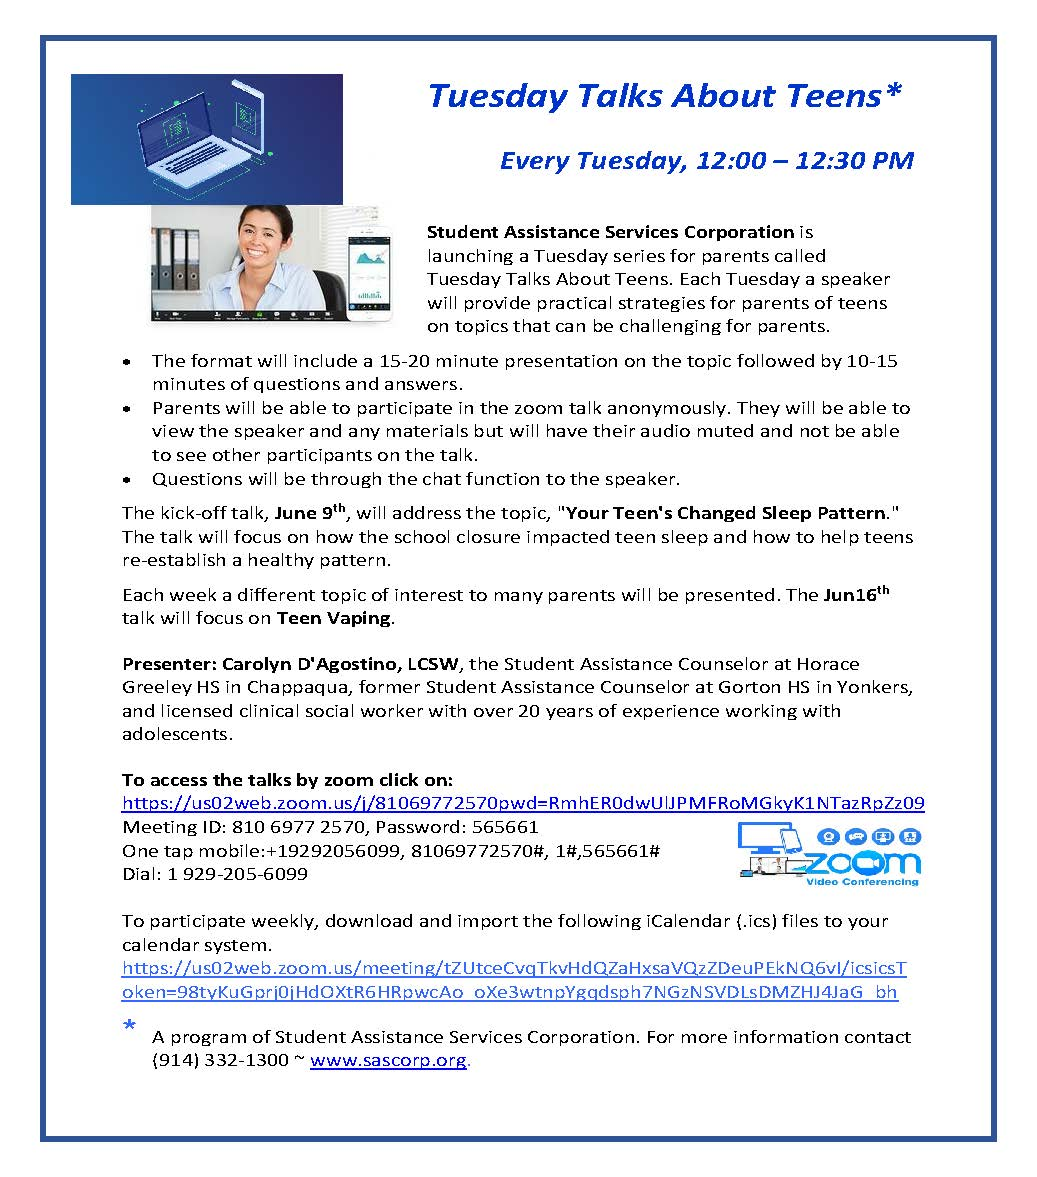 Tuesday Talks about Teens